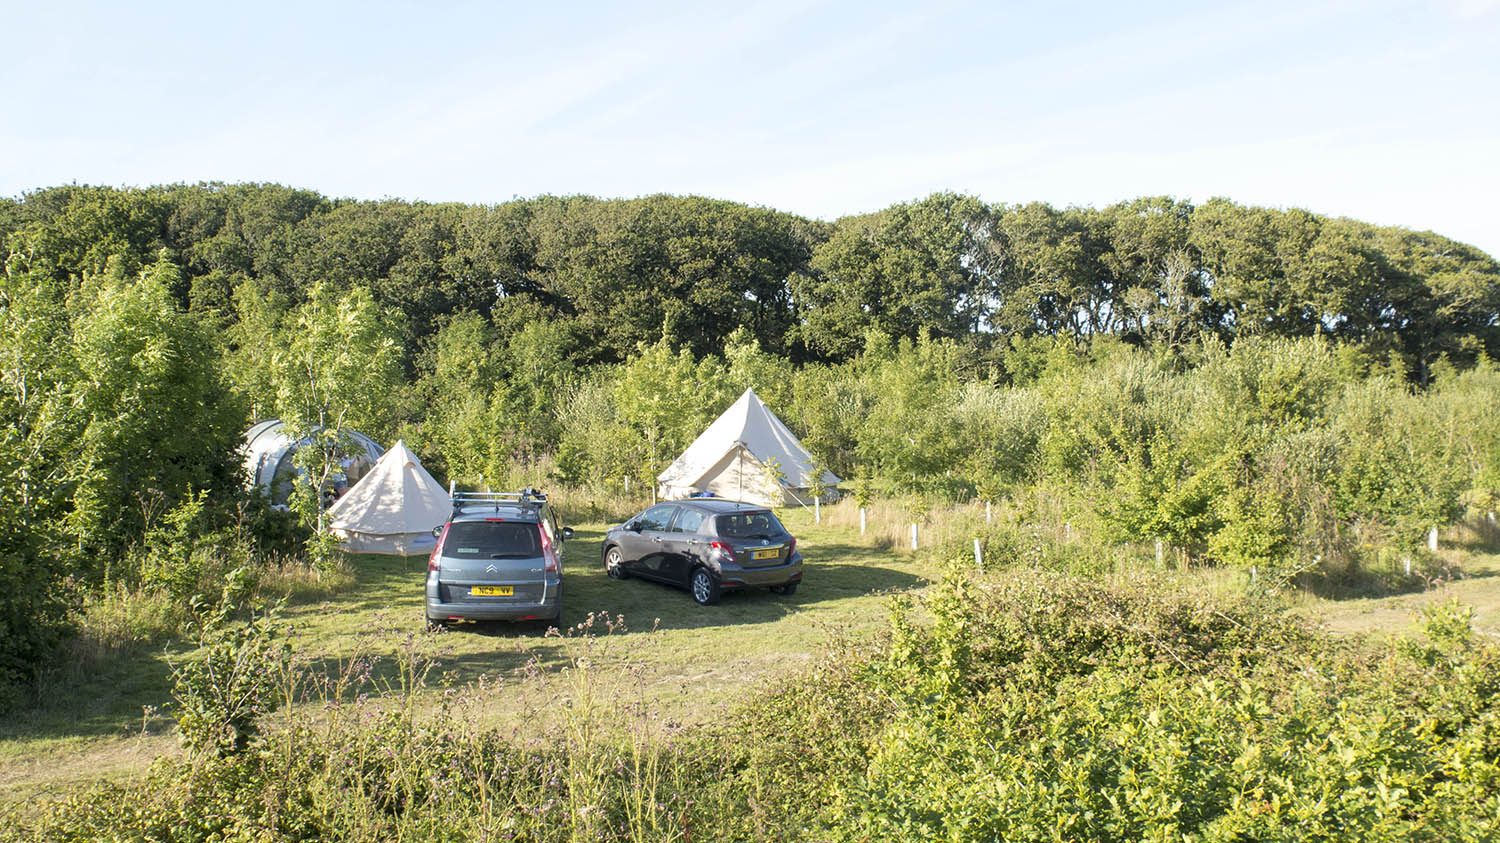 Low level aerial view of the campsite